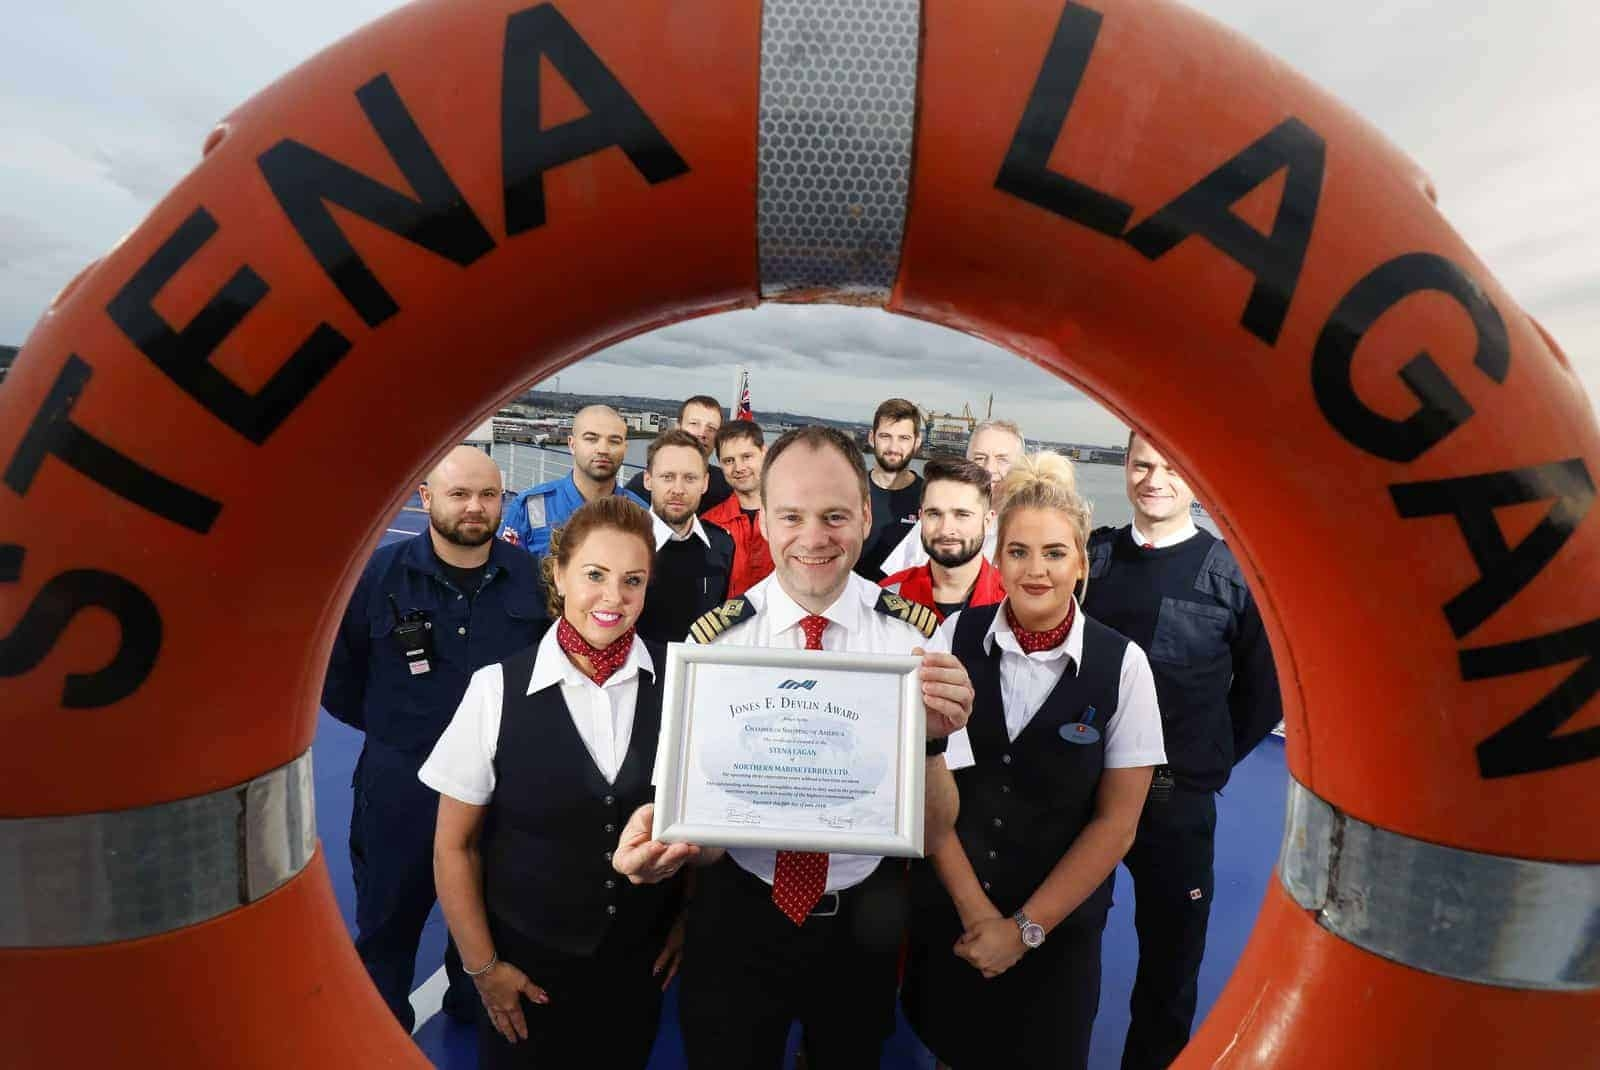 Captain Steve Millar and crew members from the Stena Lagan celebrate receiving the prestigious Jones F. Devlin Award from the Chamber of Shipping of America (CSA) for operating three consecutive years without a lost-time accident. ©Press Eye/Darren Kidd